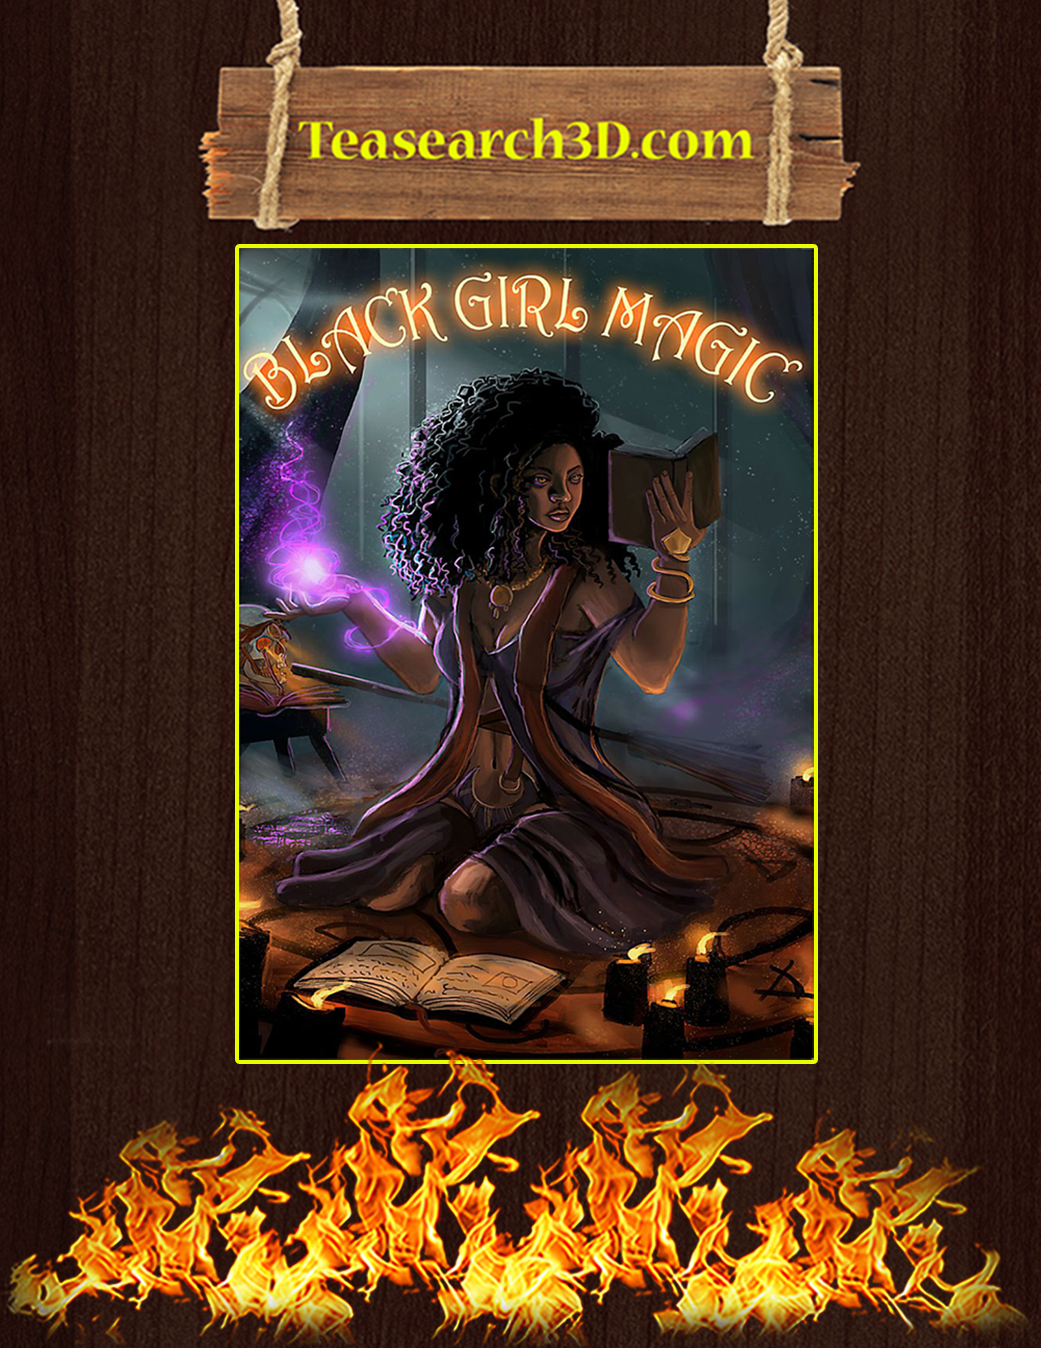 Witch black girl magic poster A1